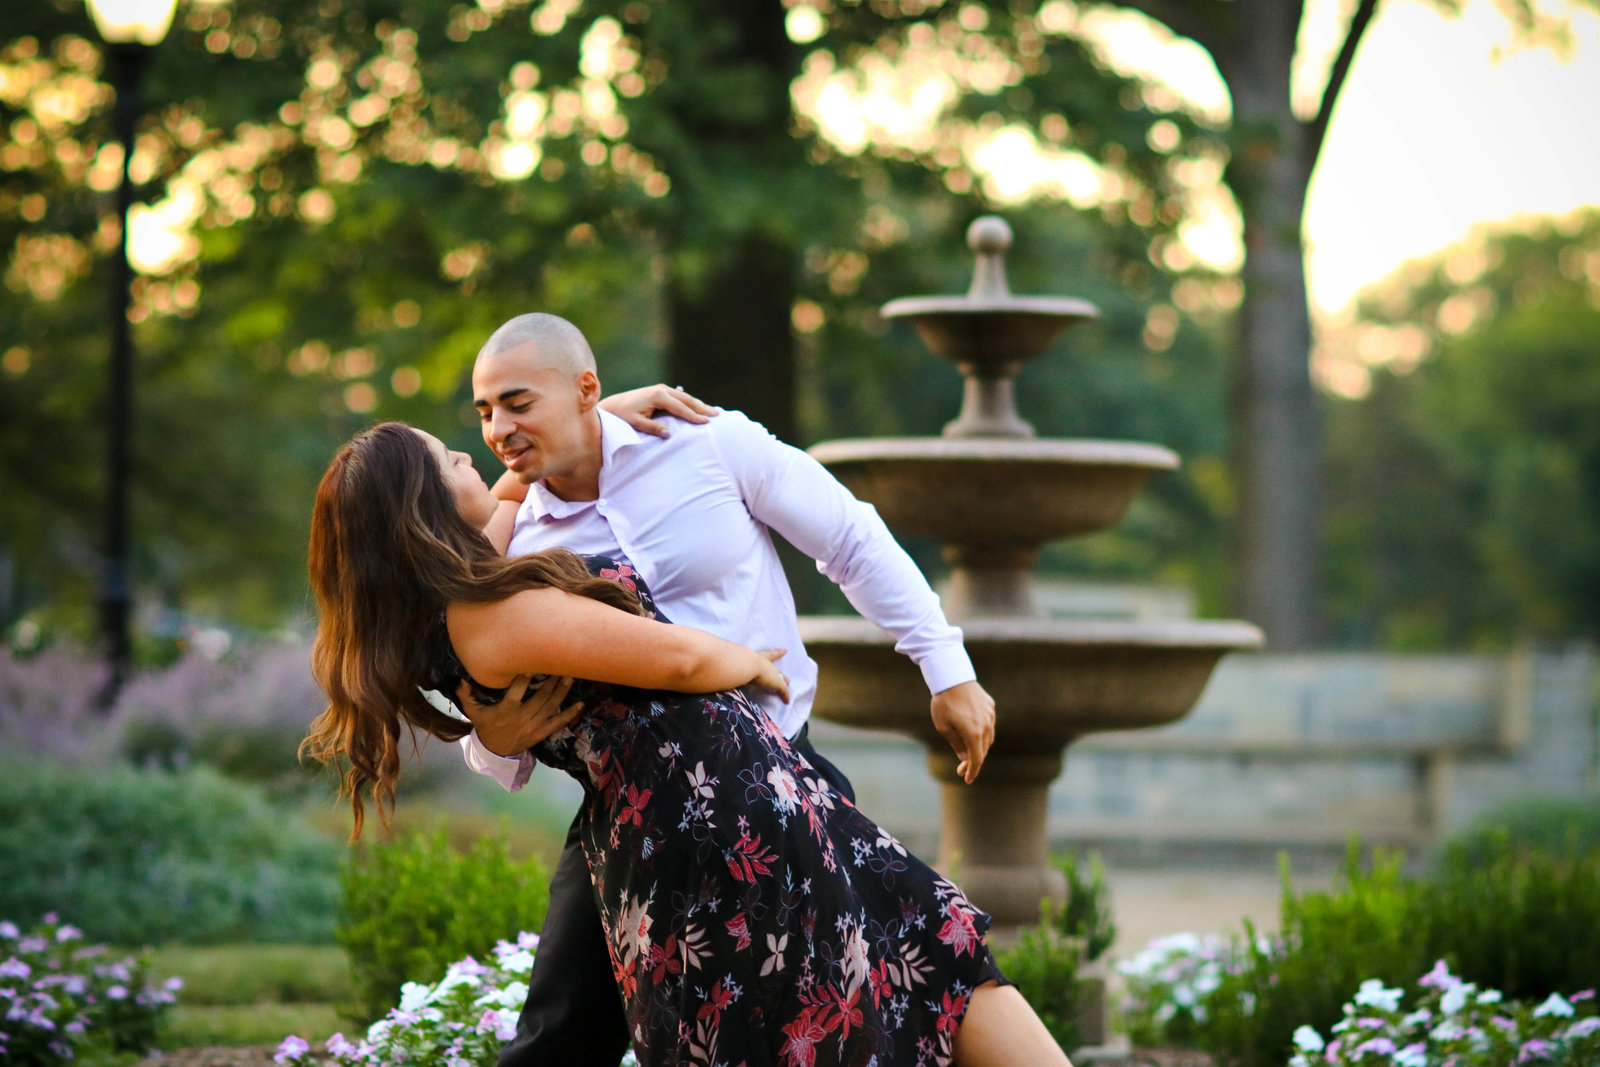 warinanco-park-engagement-photos-eveliophoto-124